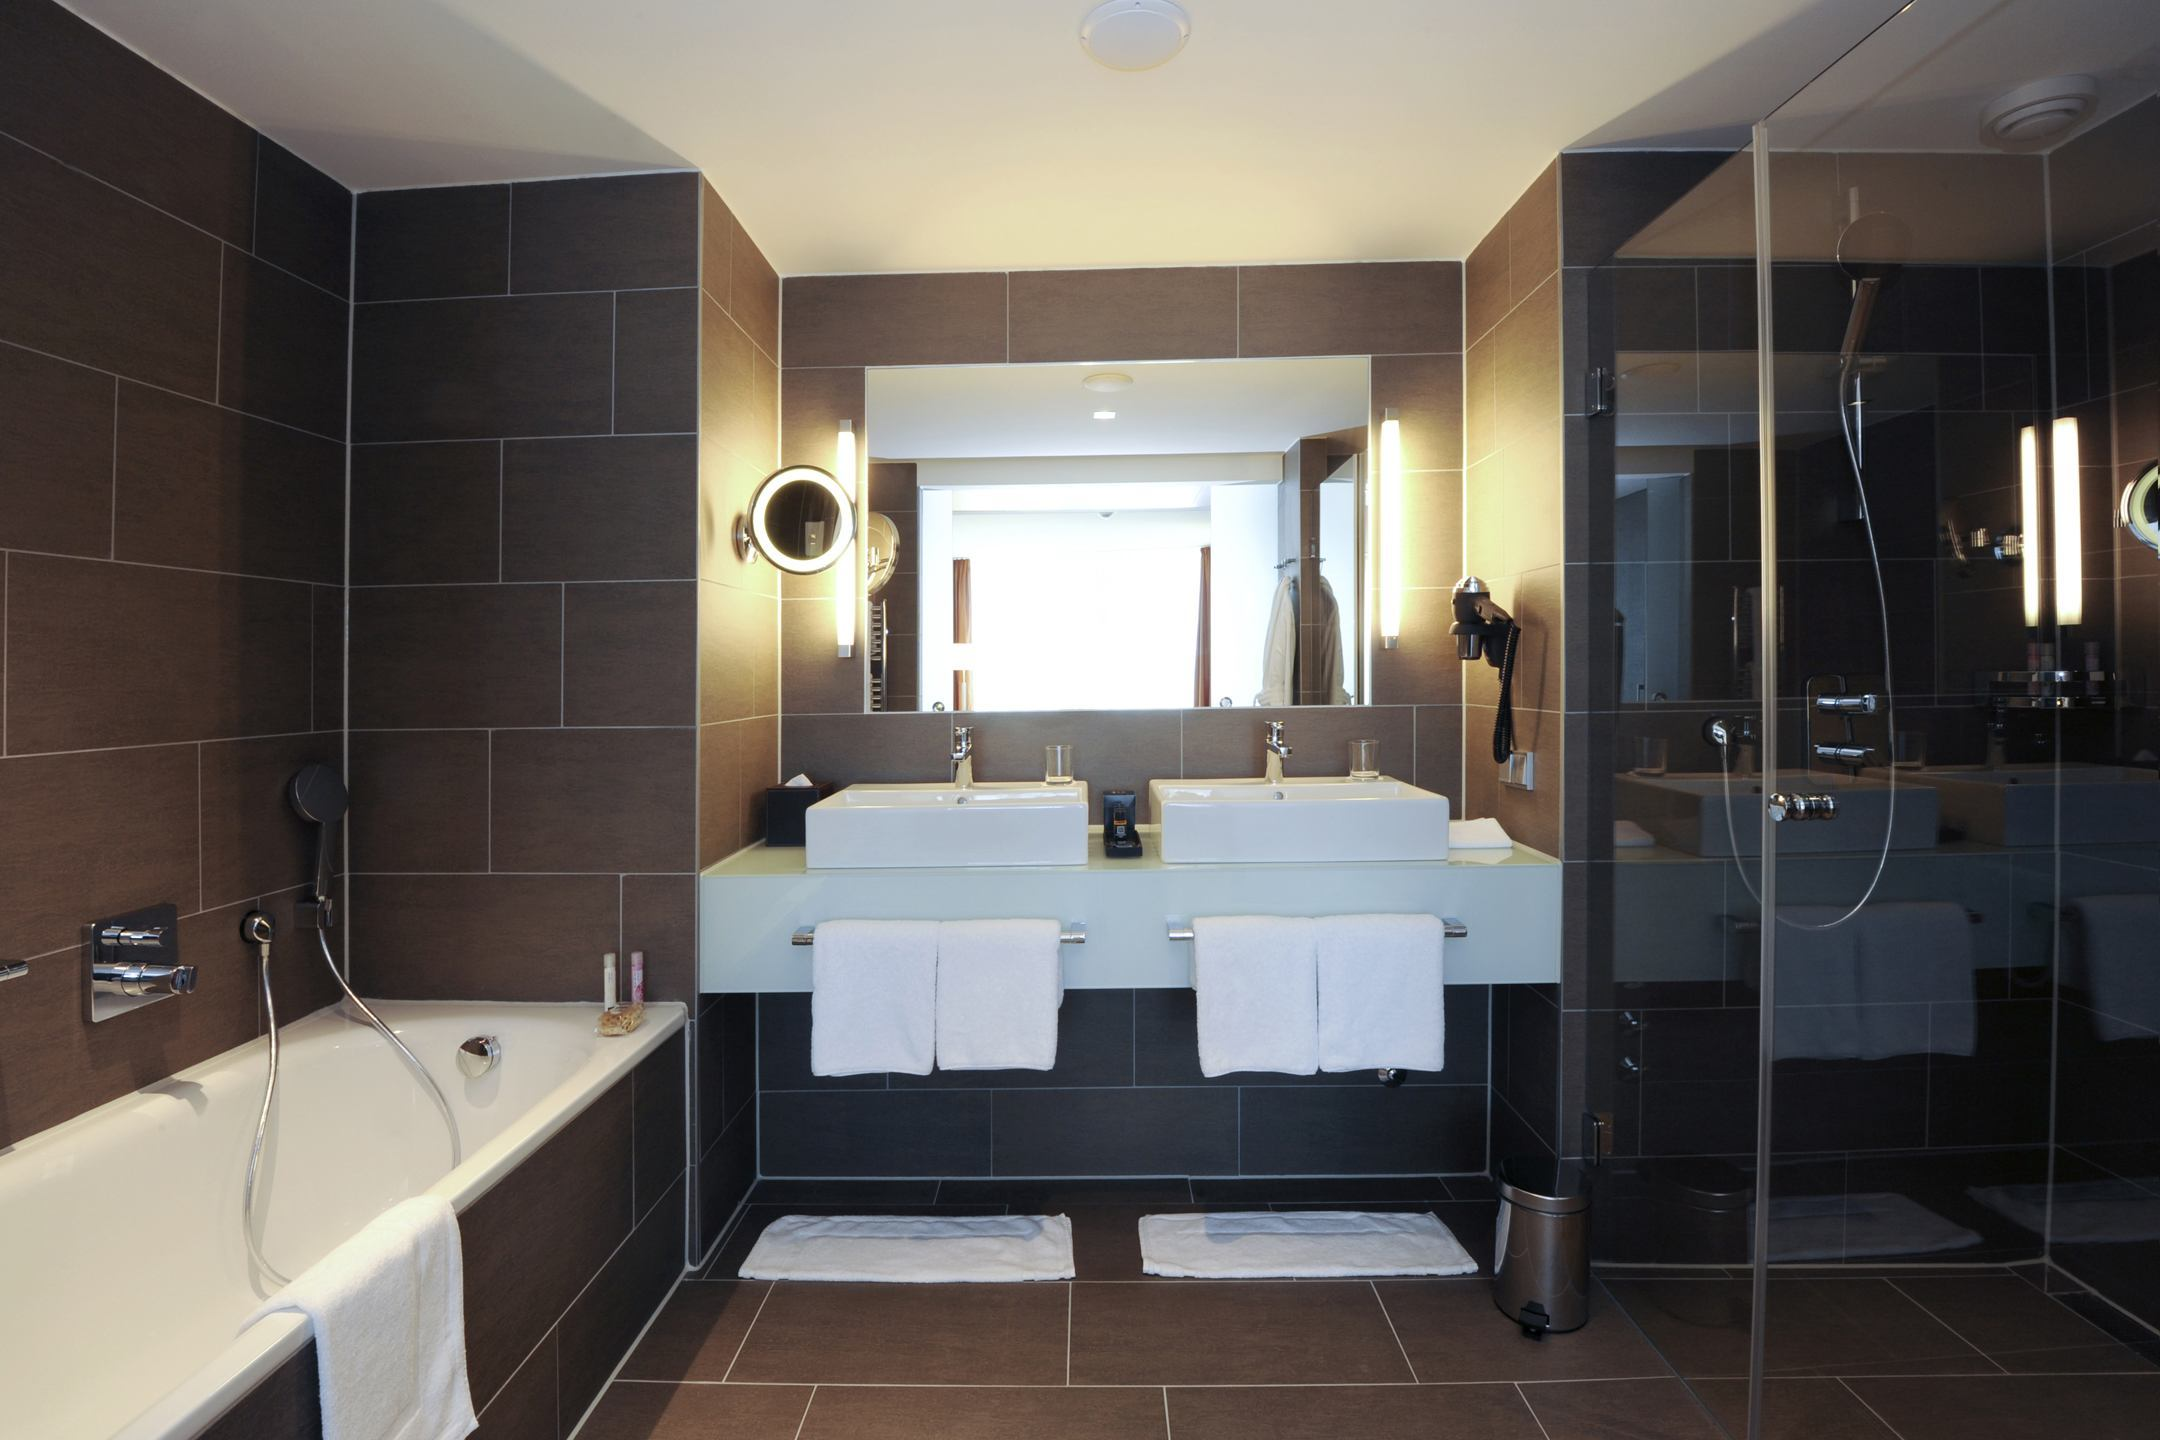 Badezimmer der Suite im ATLANTIC Grand Hotel in Bremen